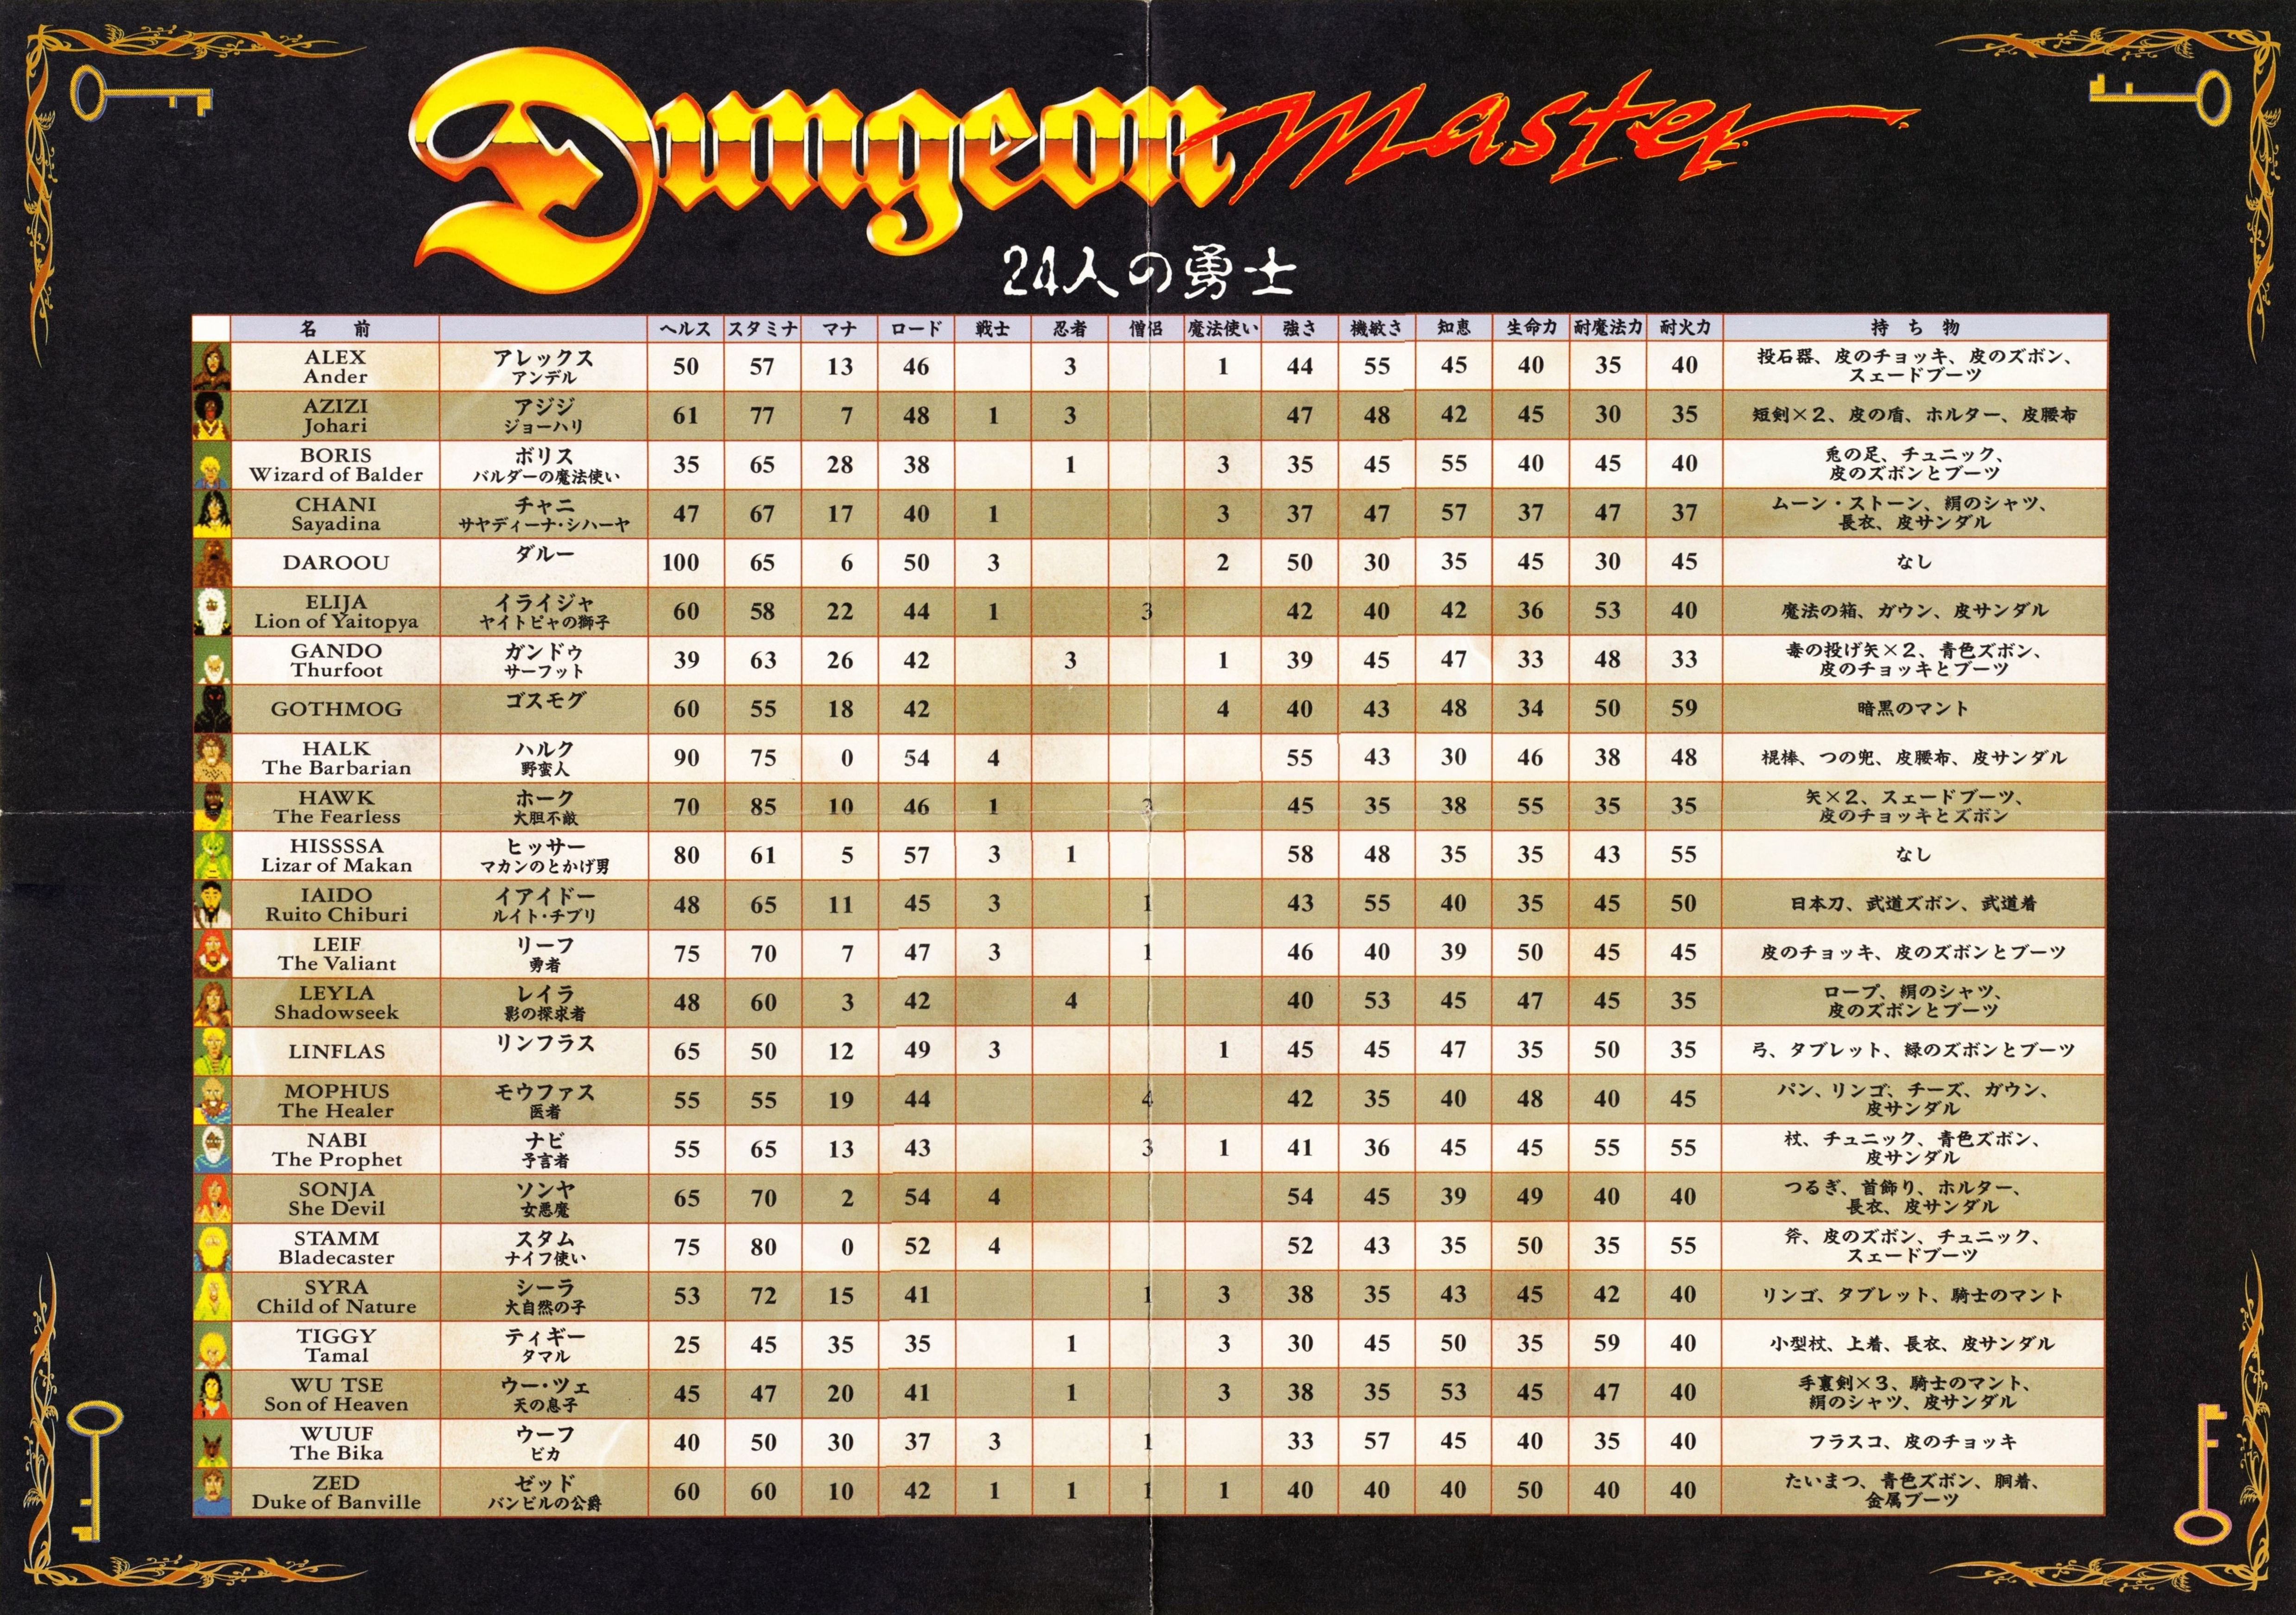 Game - Dungeon Master - JP - PC-9801 - 5.25-inch - Information Card - Front - Scan